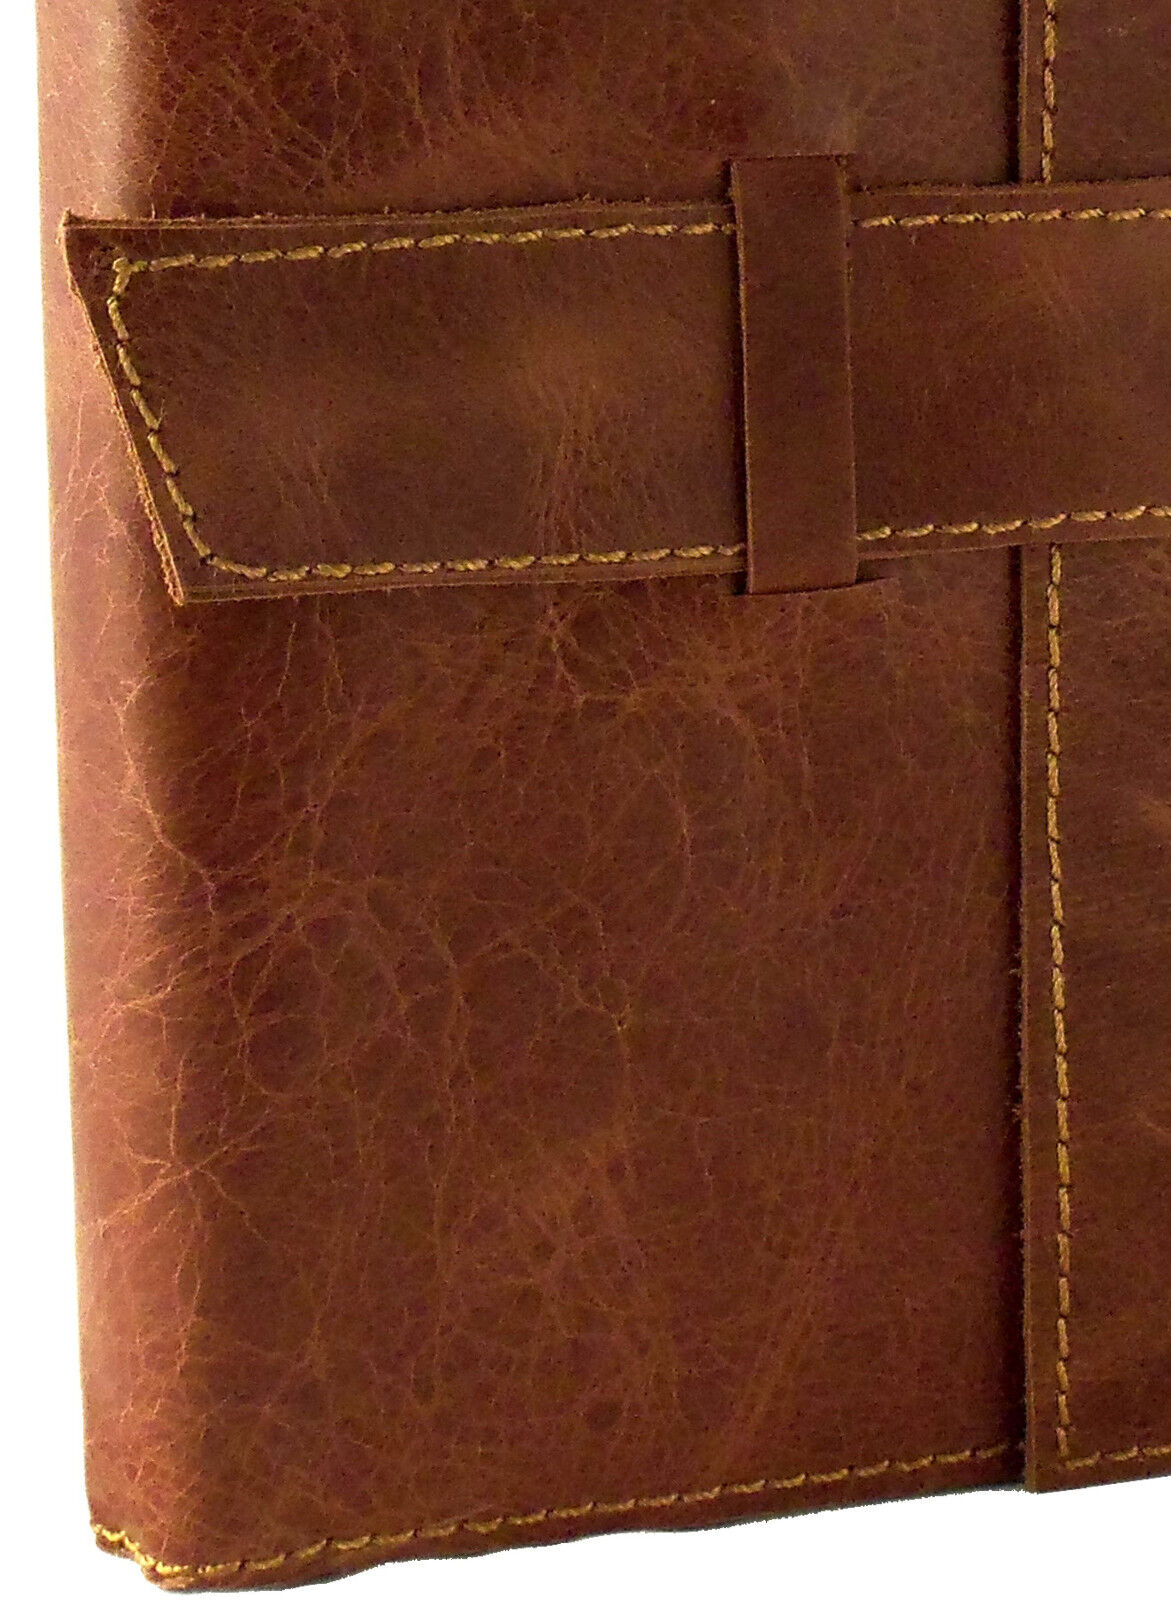 Refillable Leather Journal Sketchbook Travel Notebook Blank Diary Vintage Rustic 3